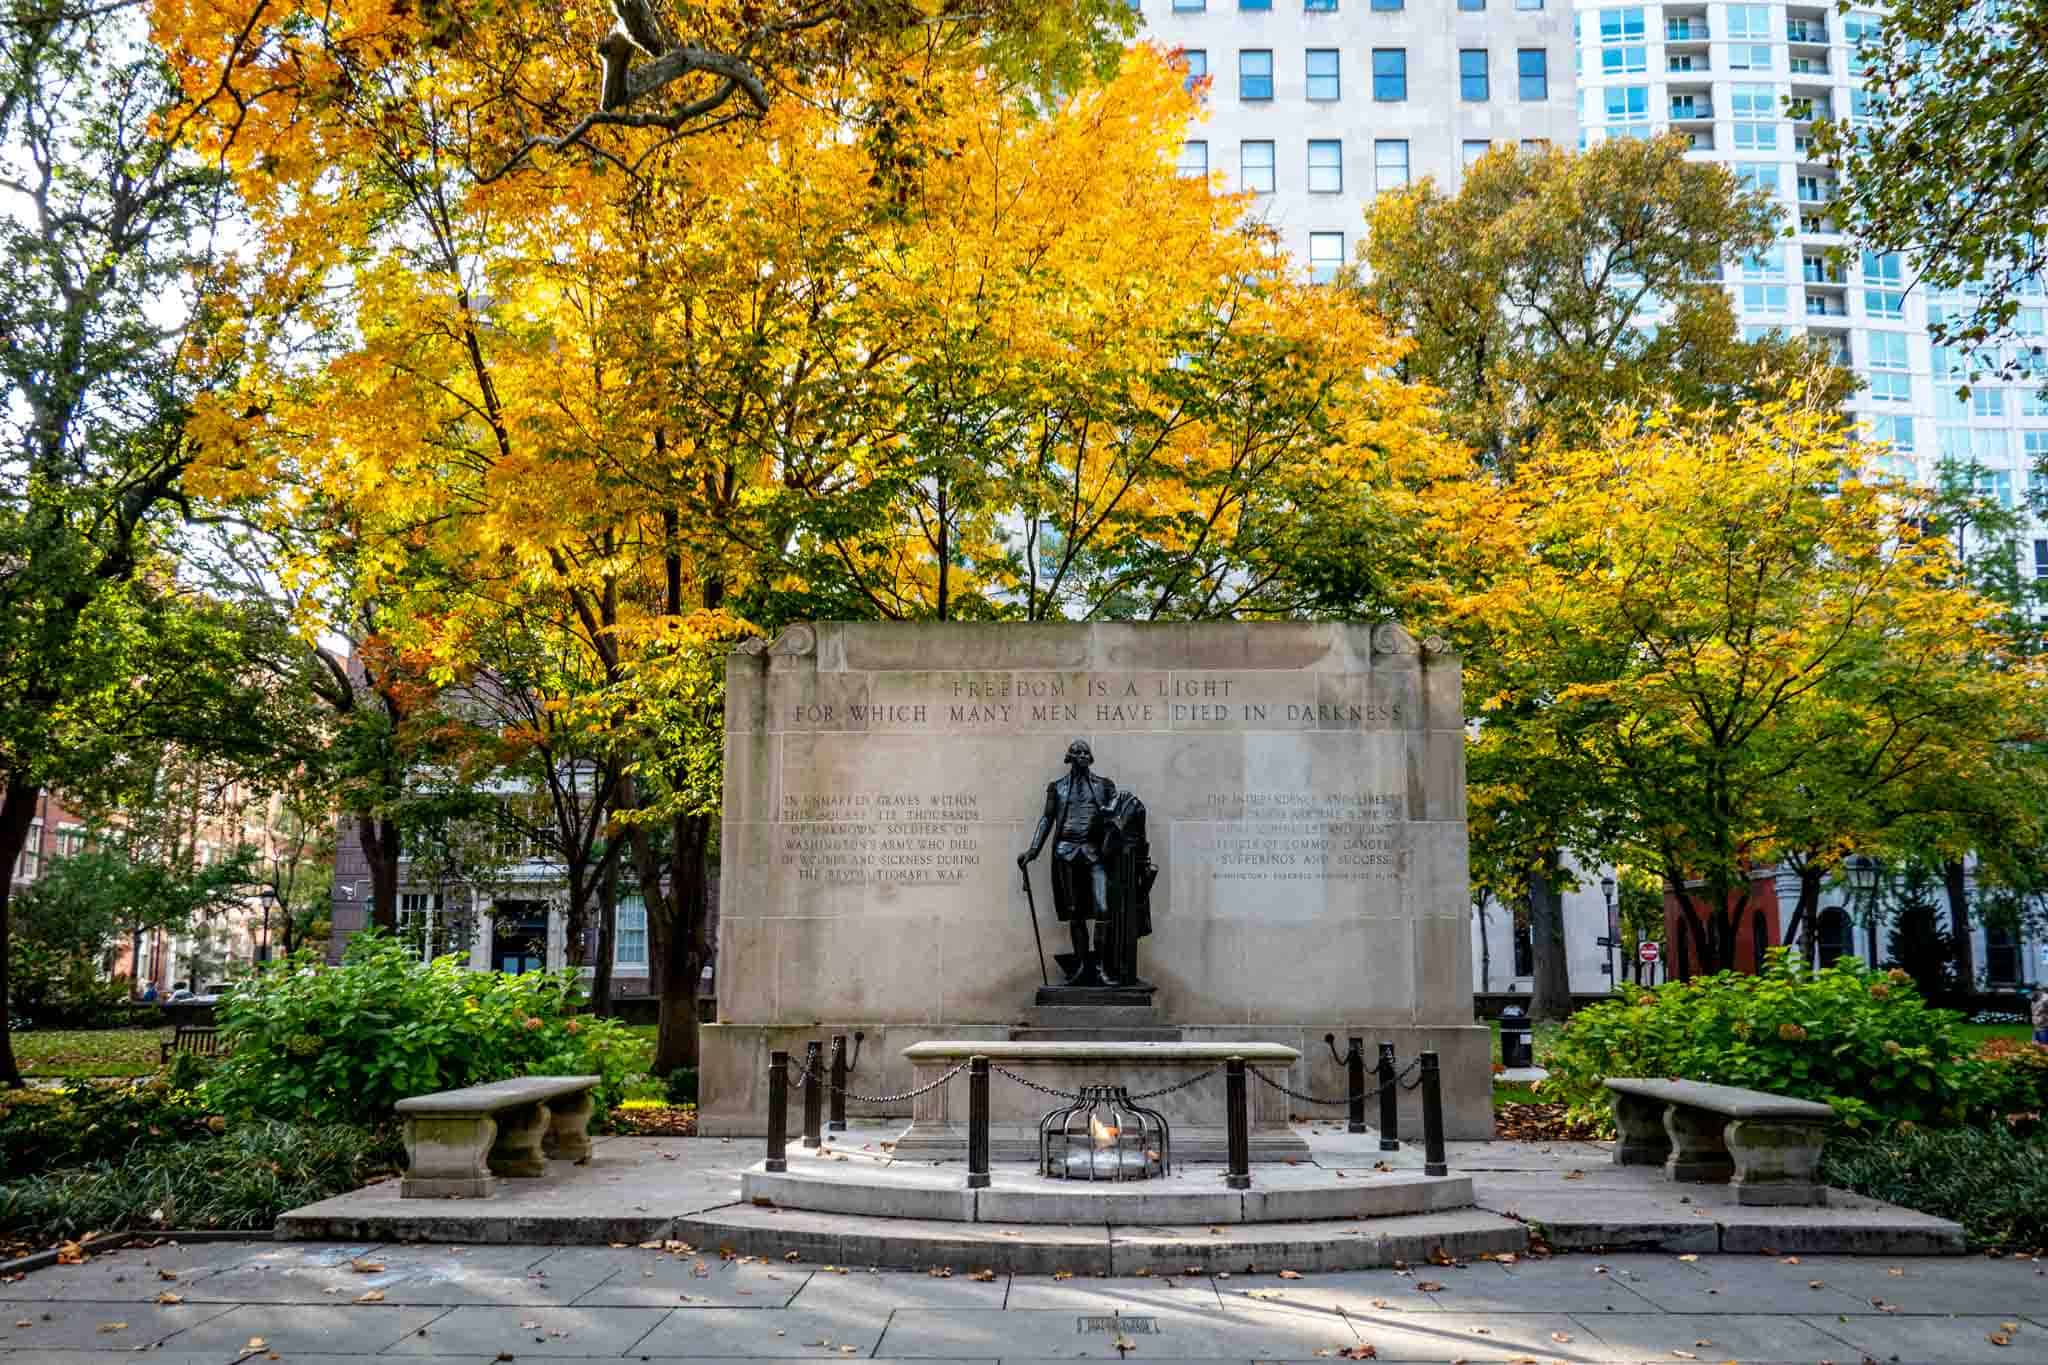 Monument surrounded by fall foliage in a park